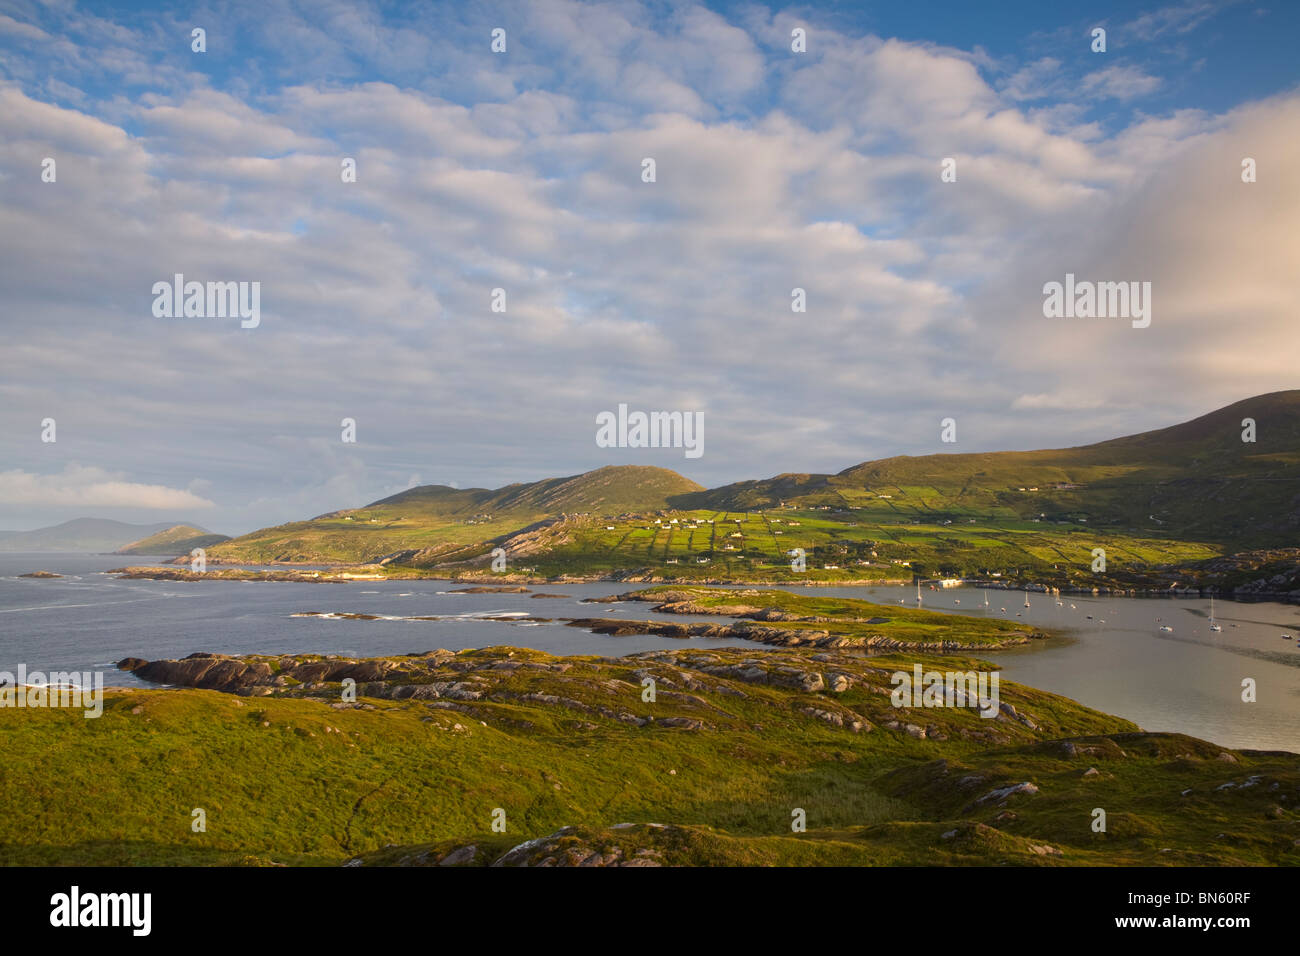 Elevated view over the dramatic coastal landscape of Derrynane Bay, Iveragh Peninsula, Ring of Kerry, Co. Kerry, Stock Photo